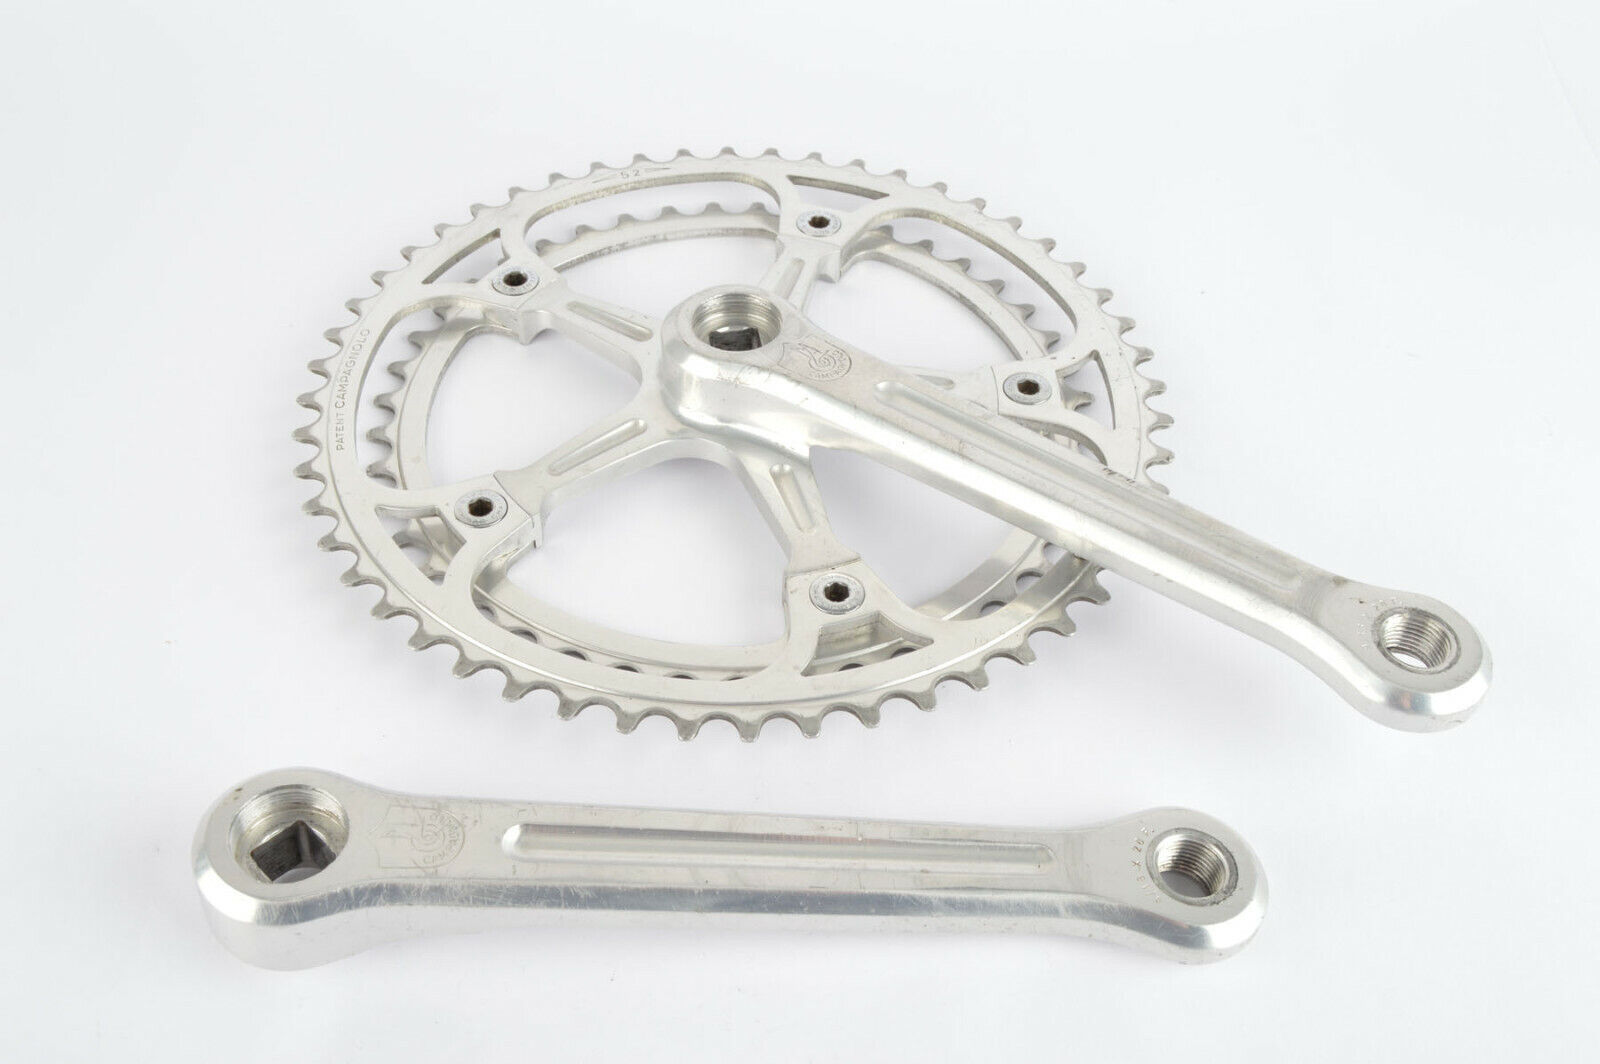 CAMPAGNOLO SUPER RECORD    1049 a crankset with 44 52 teeth and 170mm length 1977 92c20f